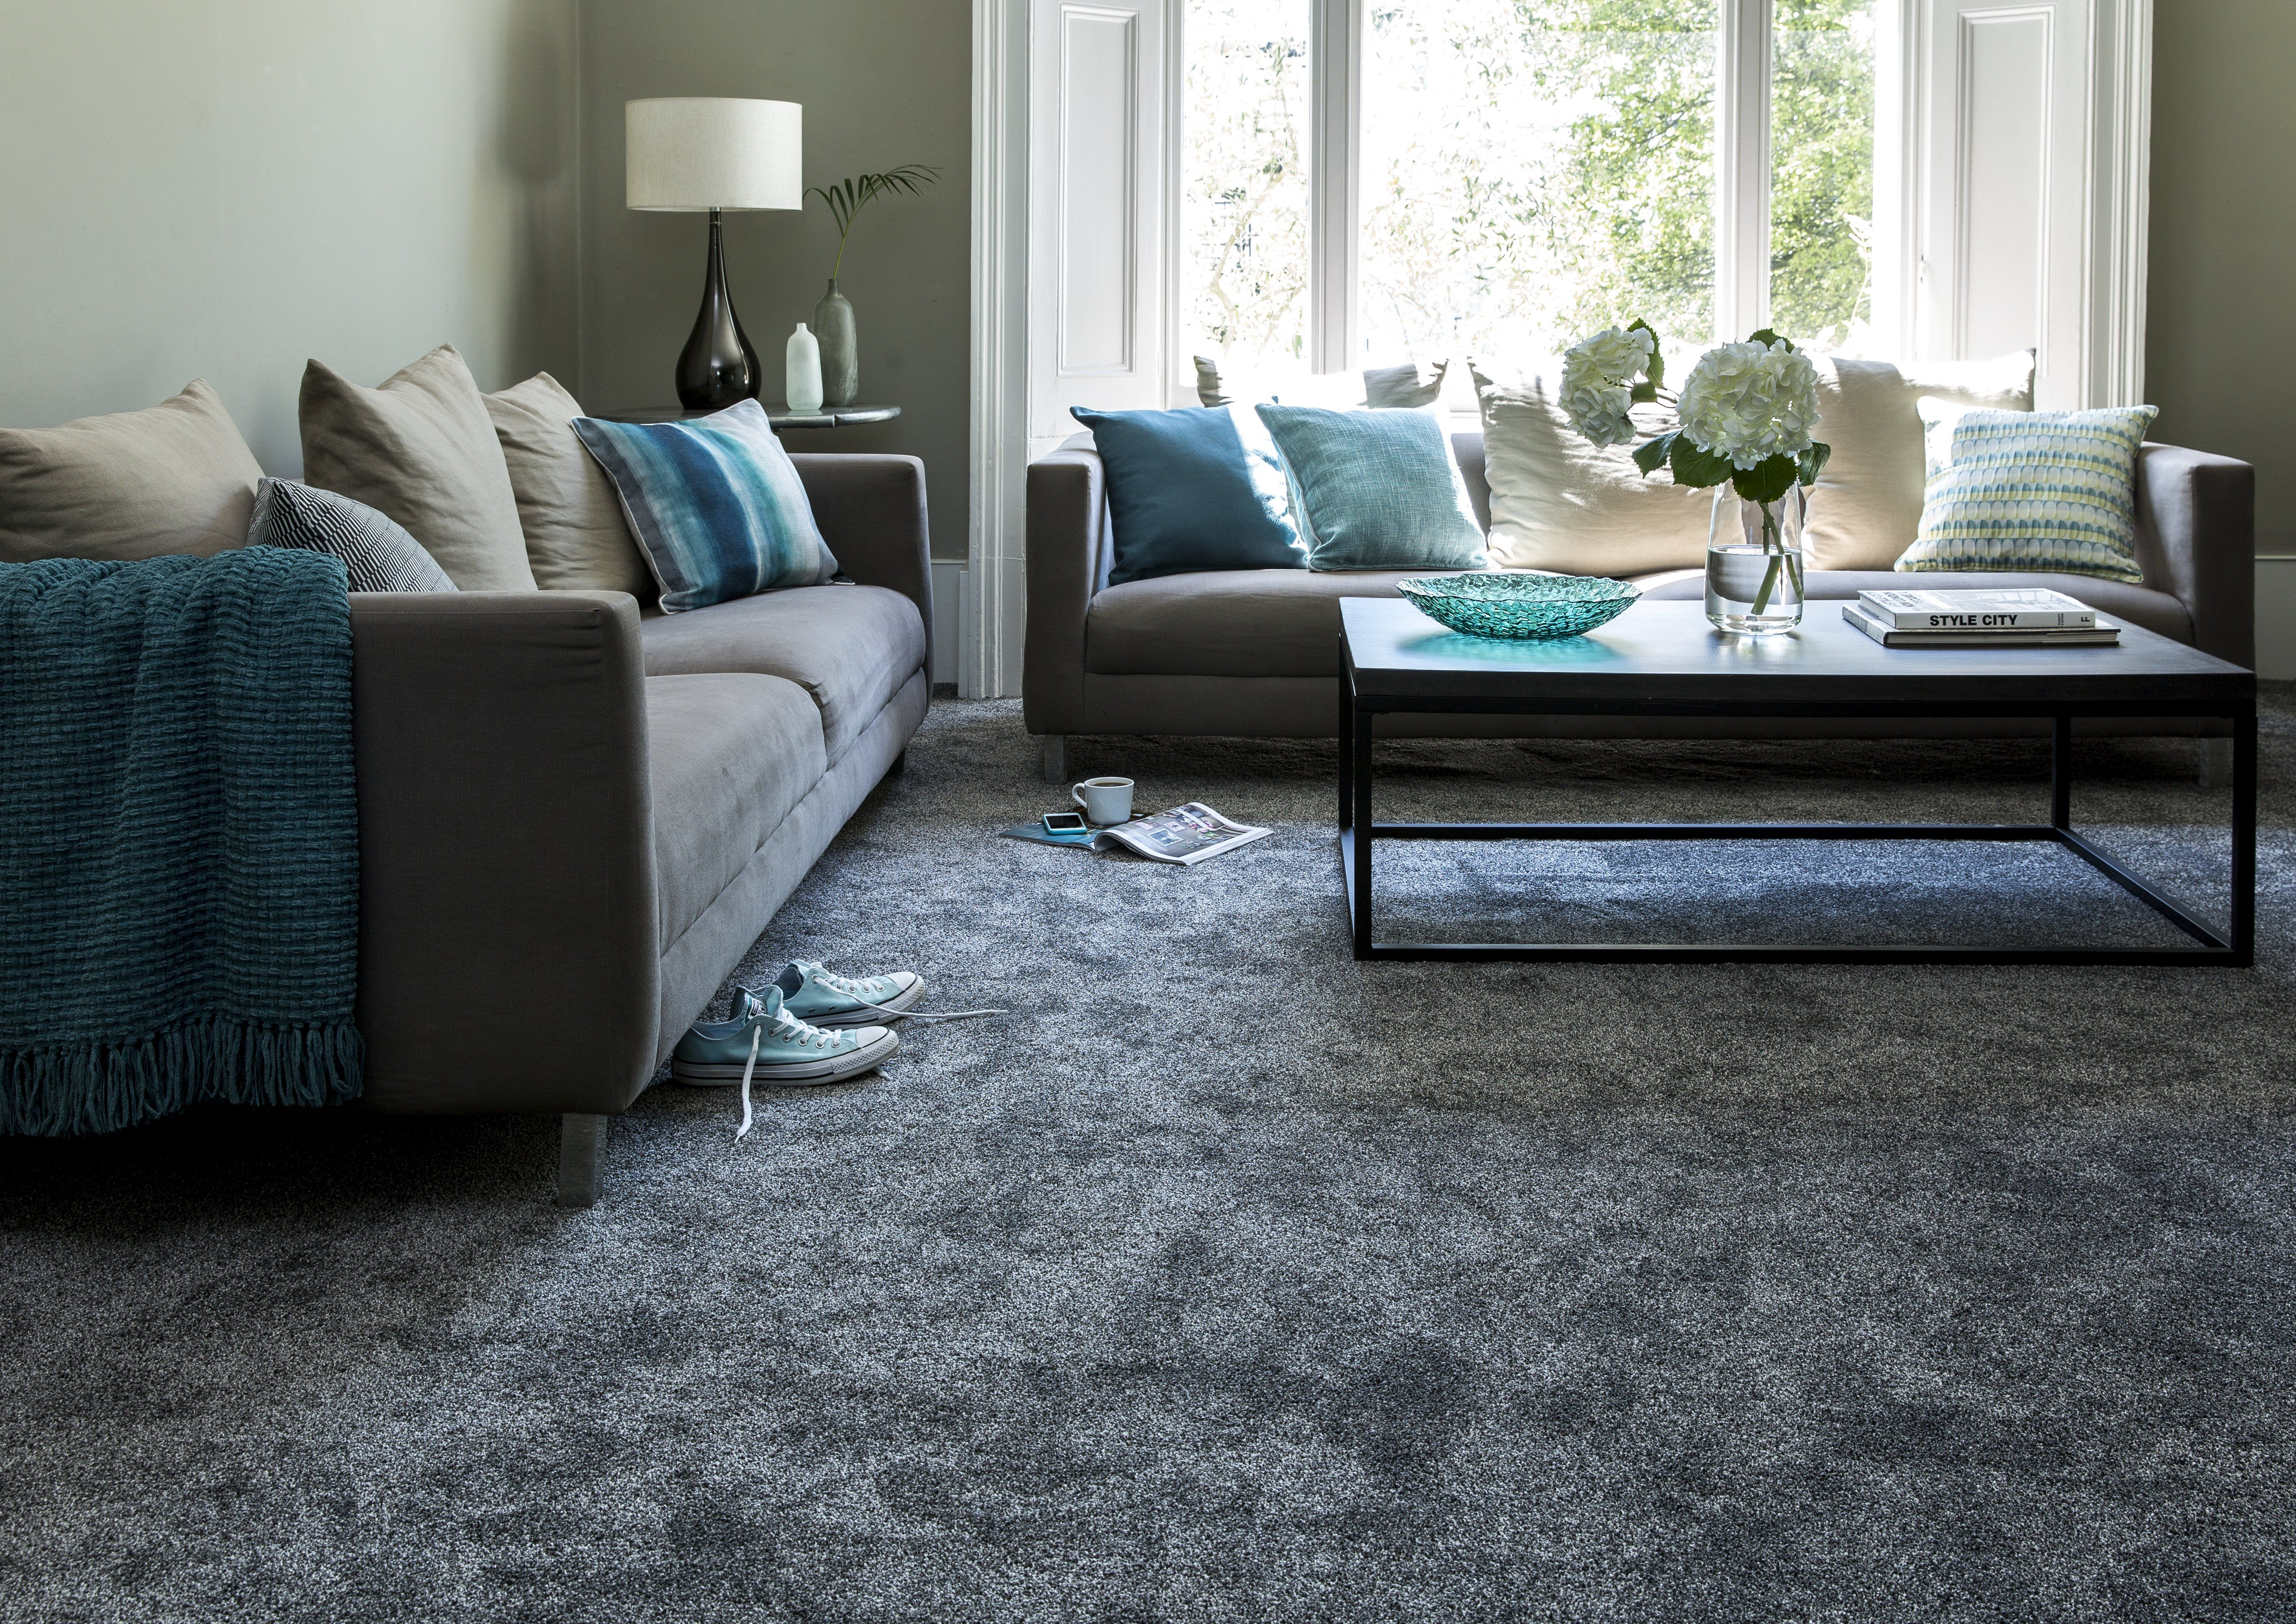 10+ Amazing Nice Living Room Rugs